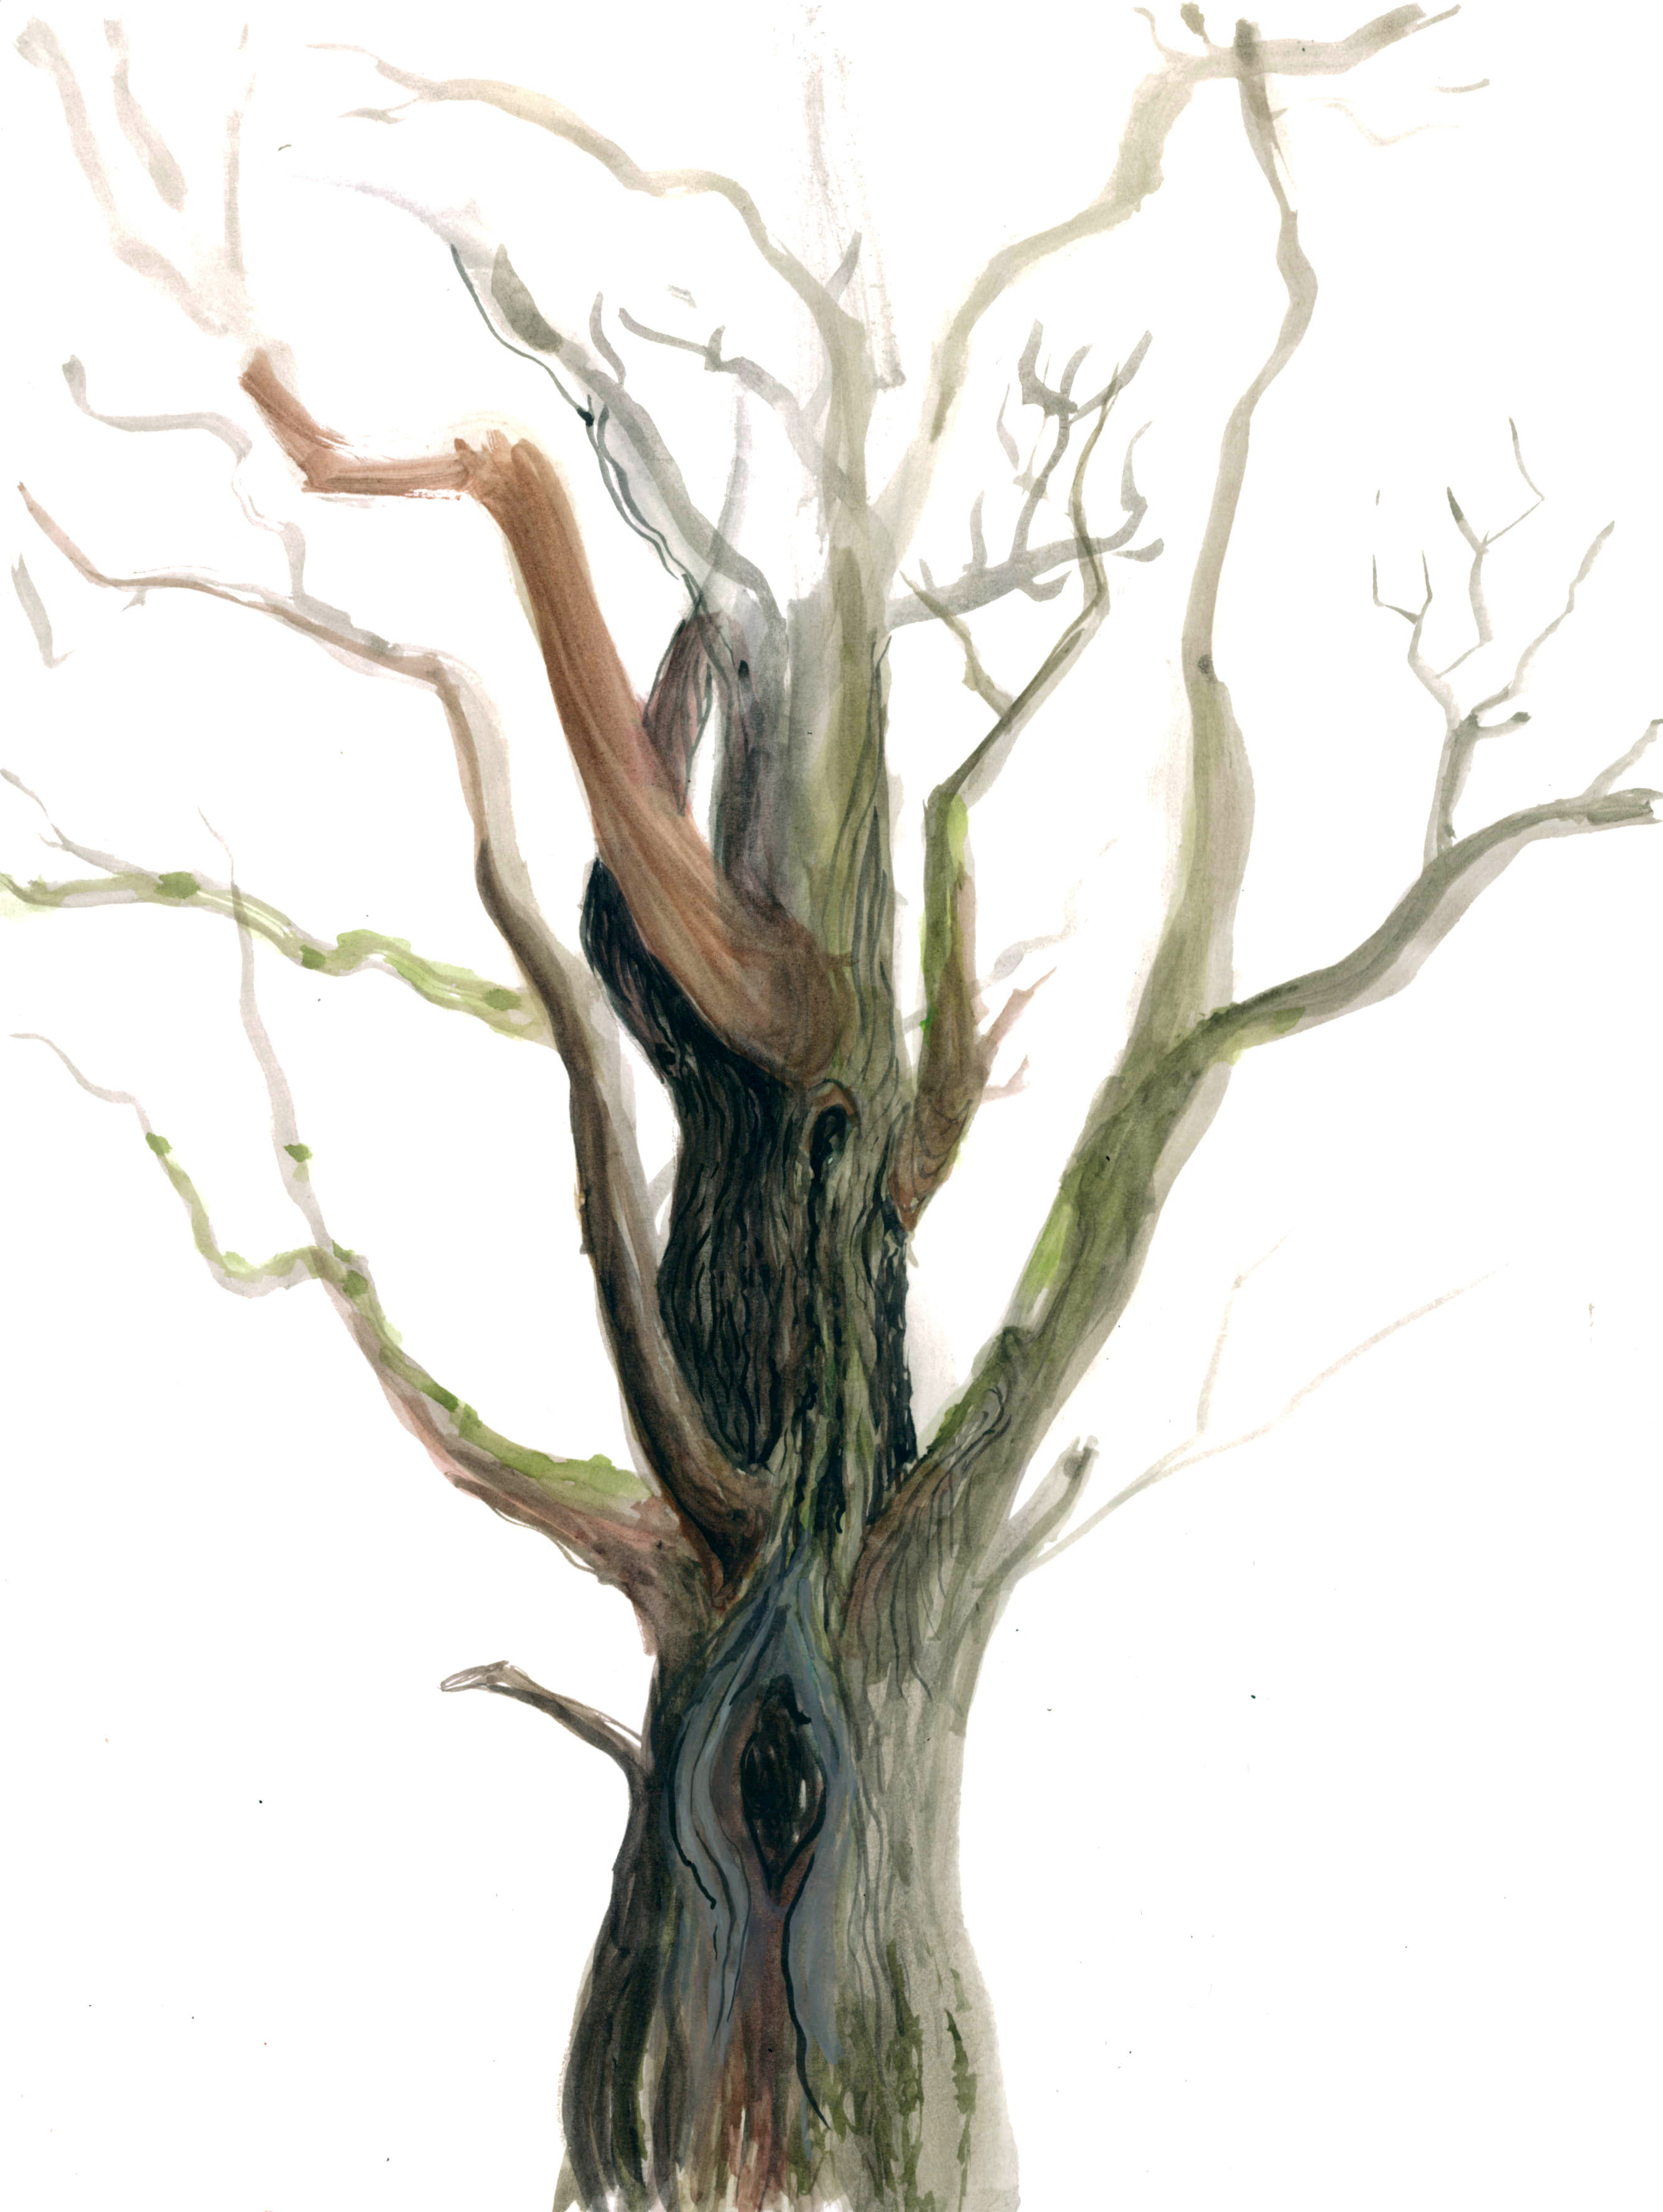 Old Tree - Work in Progress